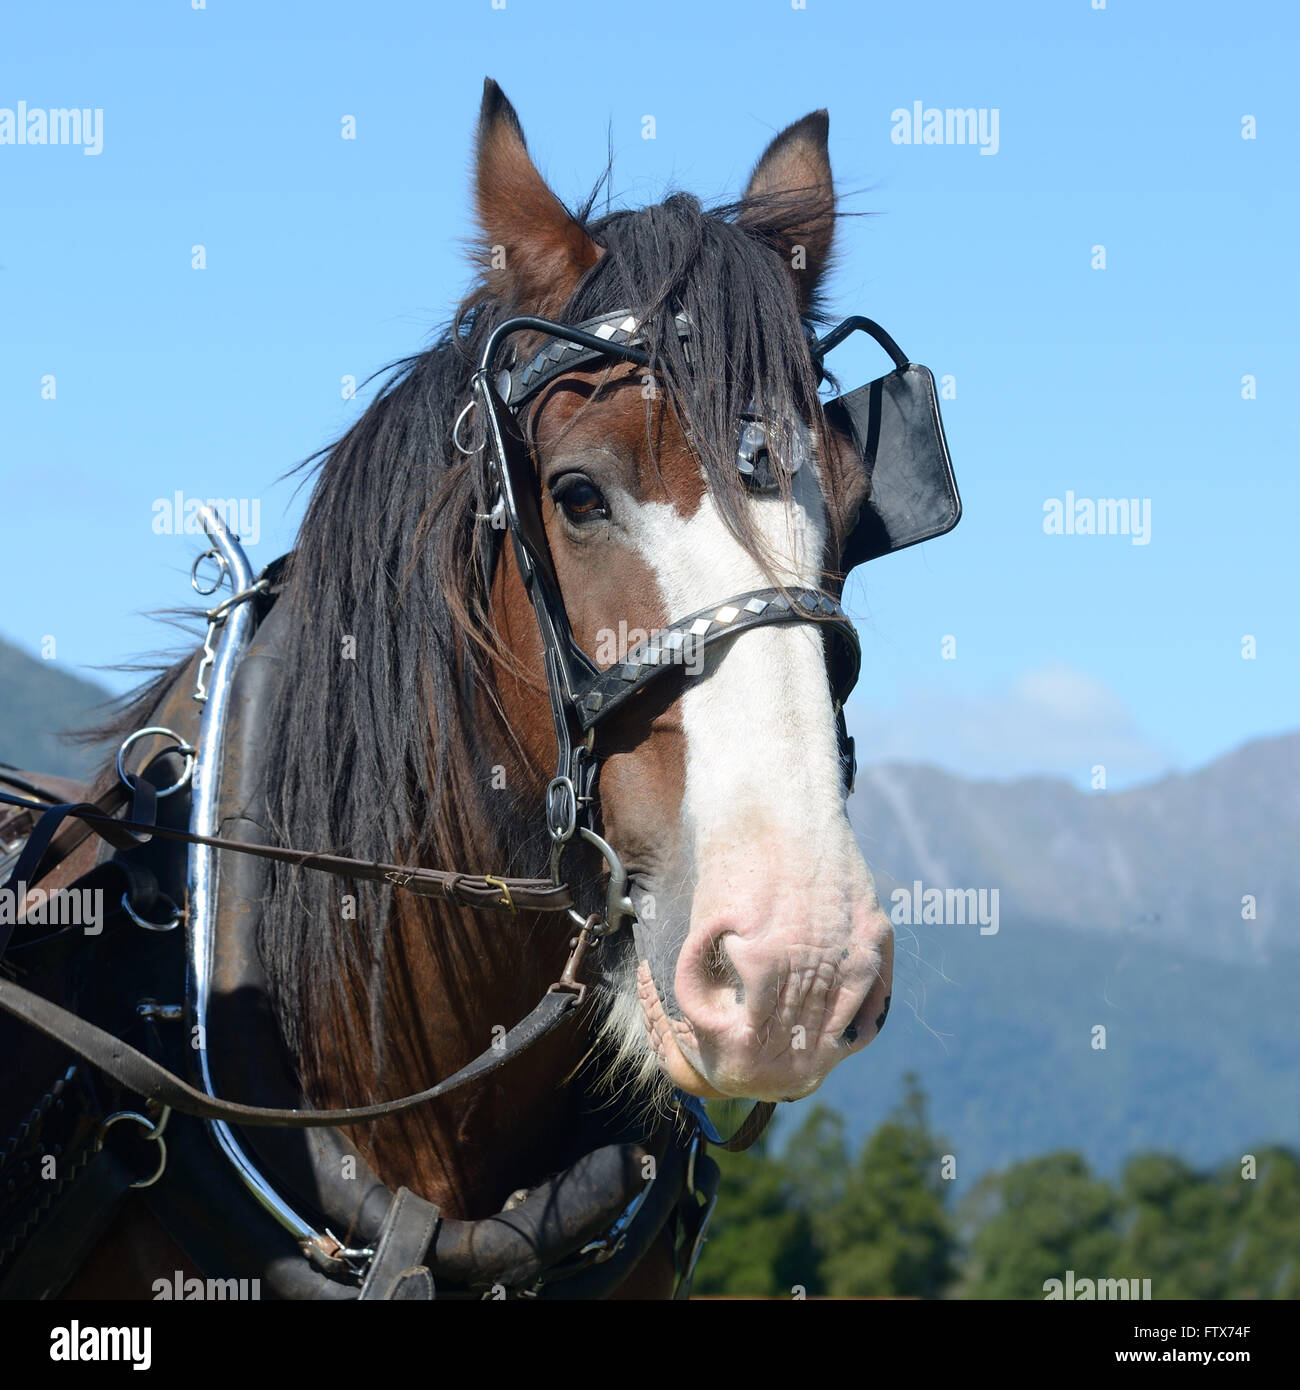 A Clydesdale horse harnessed and ready for work - Stock Image